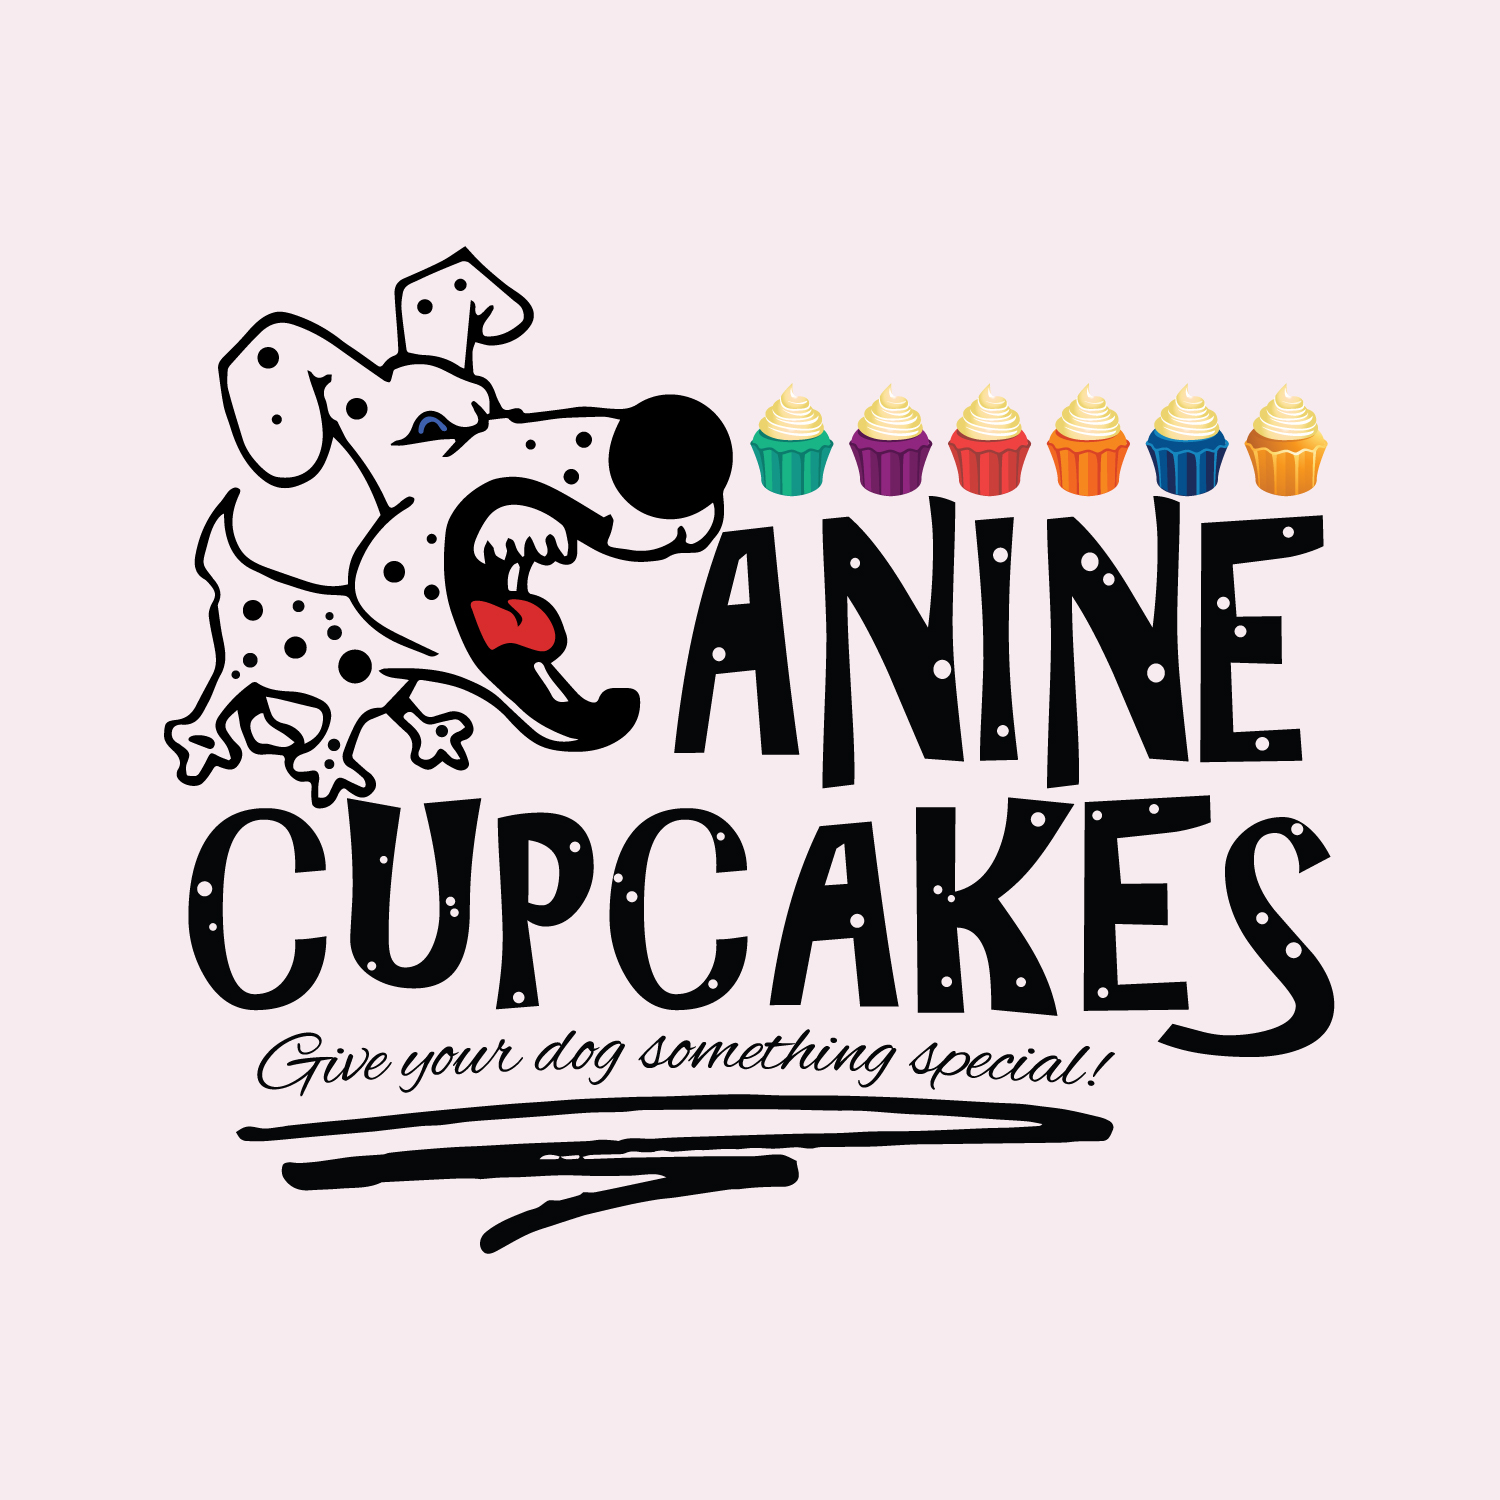 CanineCupcakes3